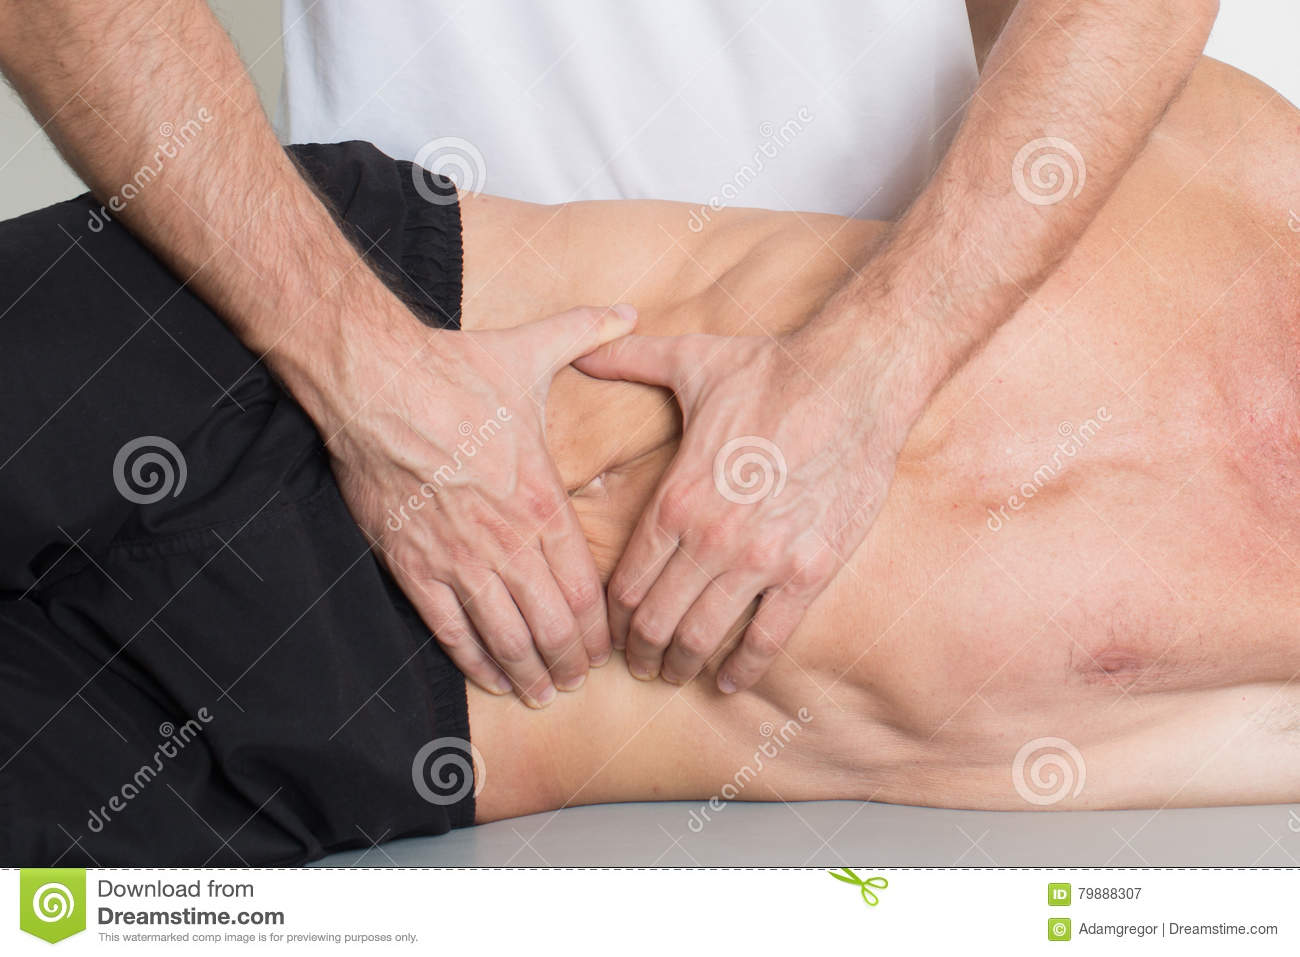 Muscle tissue massage